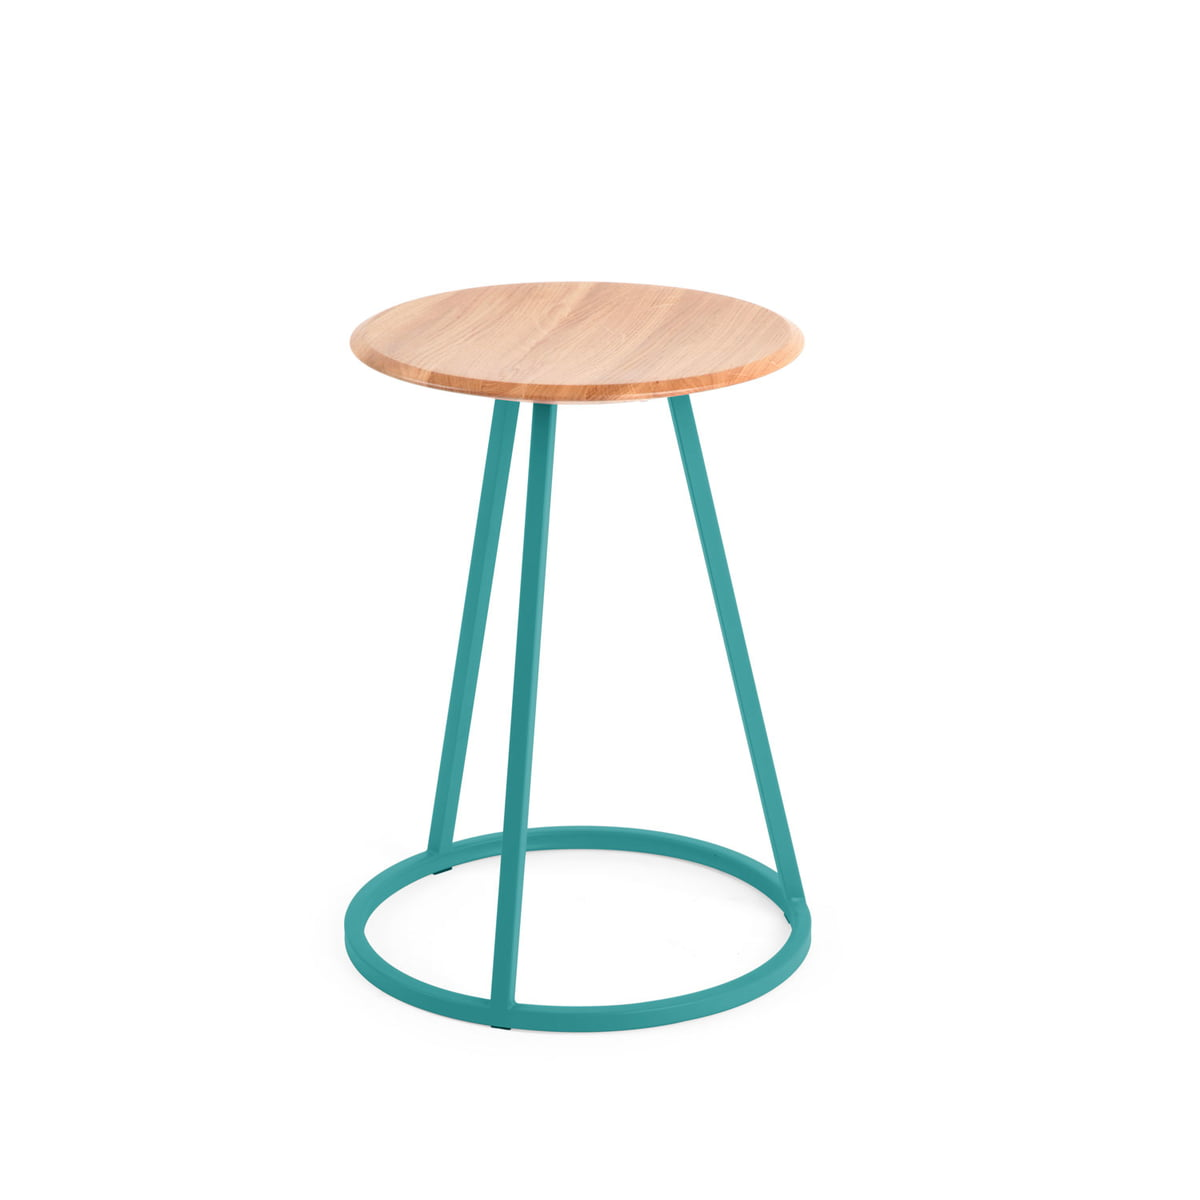 buy the petit gustave stool by hart. Black Bedroom Furniture Sets. Home Design Ideas